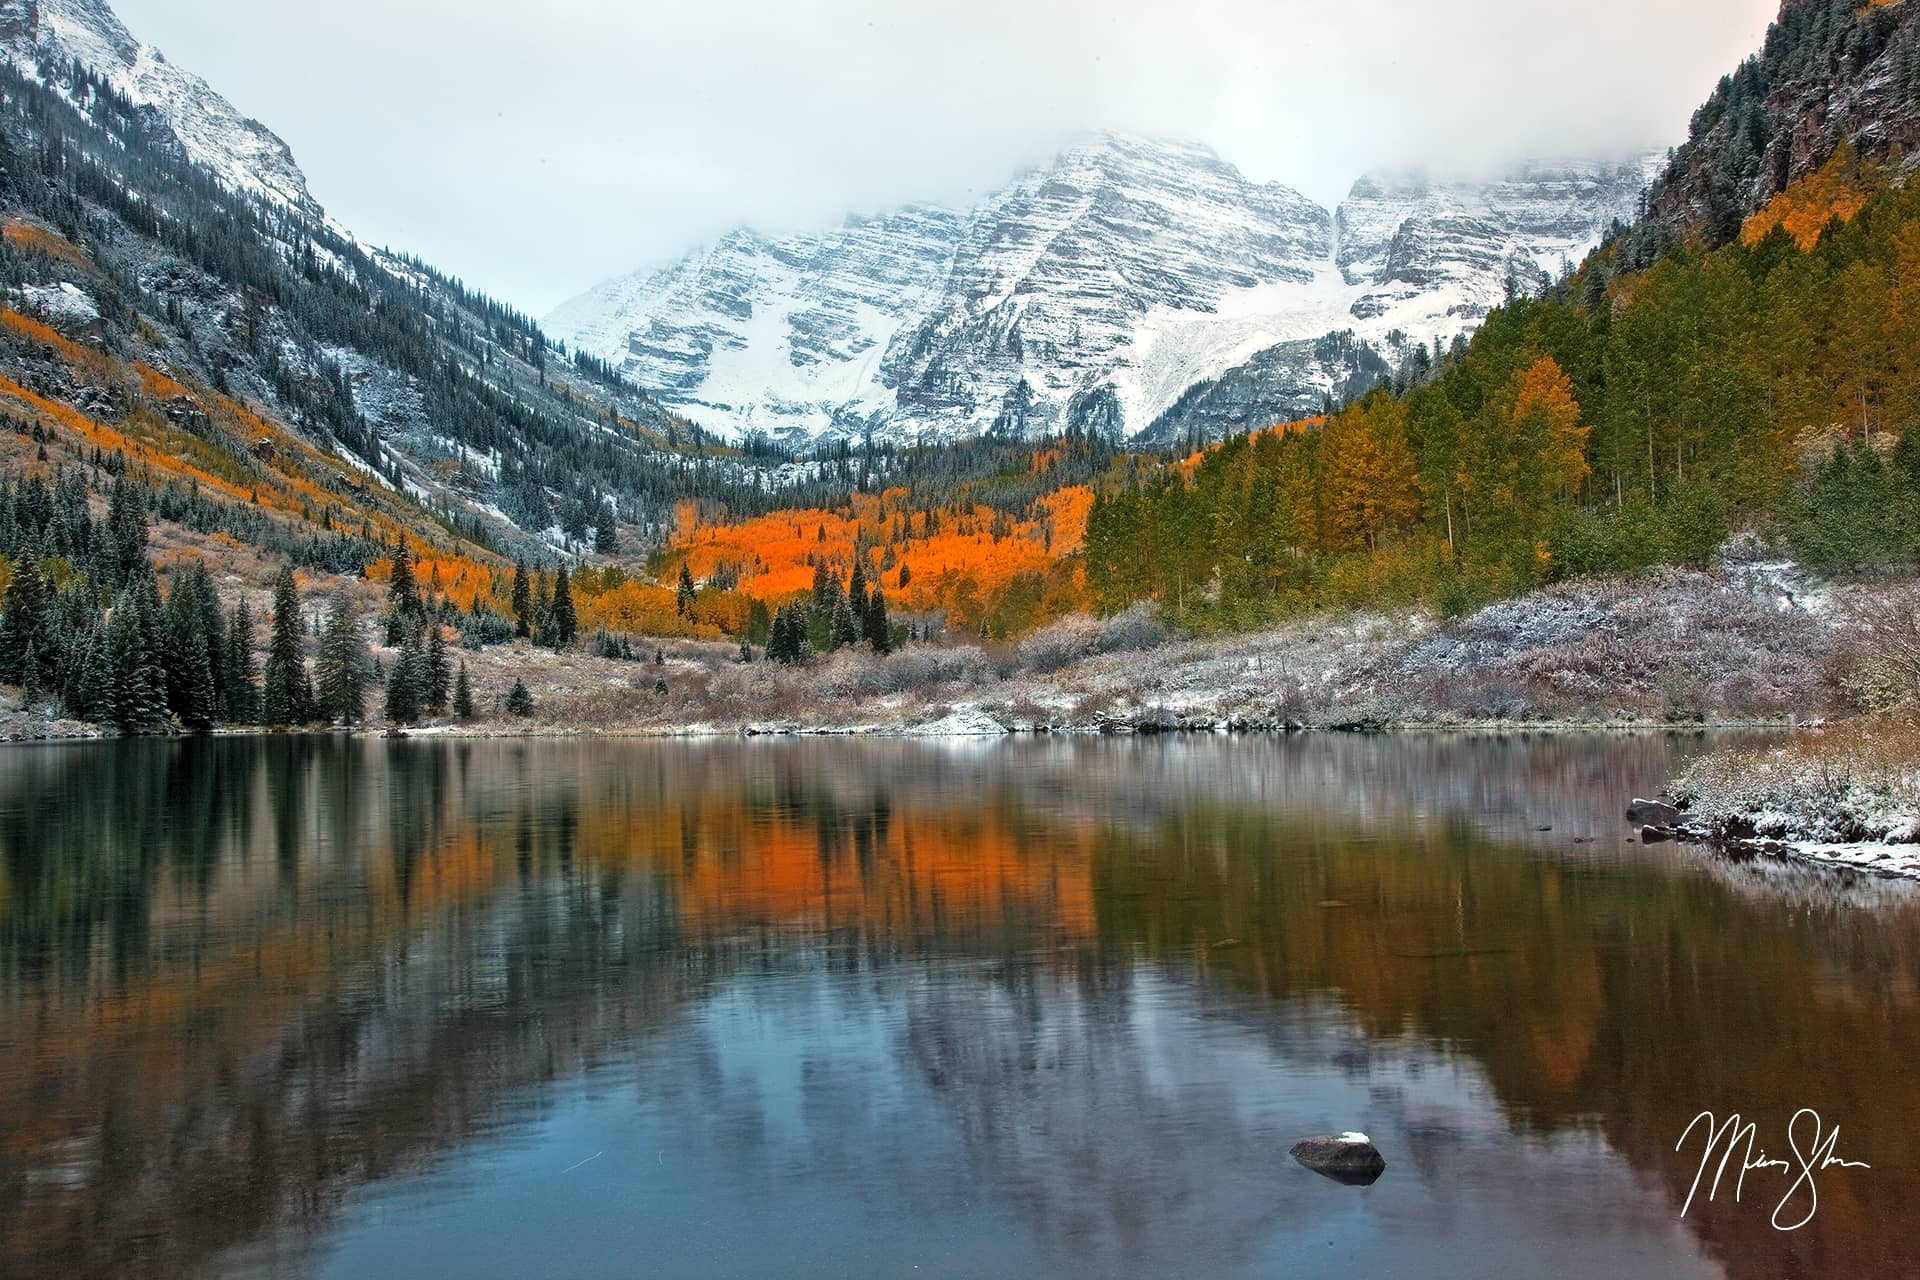 Open edition fine art print of Autumn and Winter Collide at the Maroon Bells from Mickey Shannon Photography. Location: Maroon Lake, Maroon Bells, Aspen, Colorado